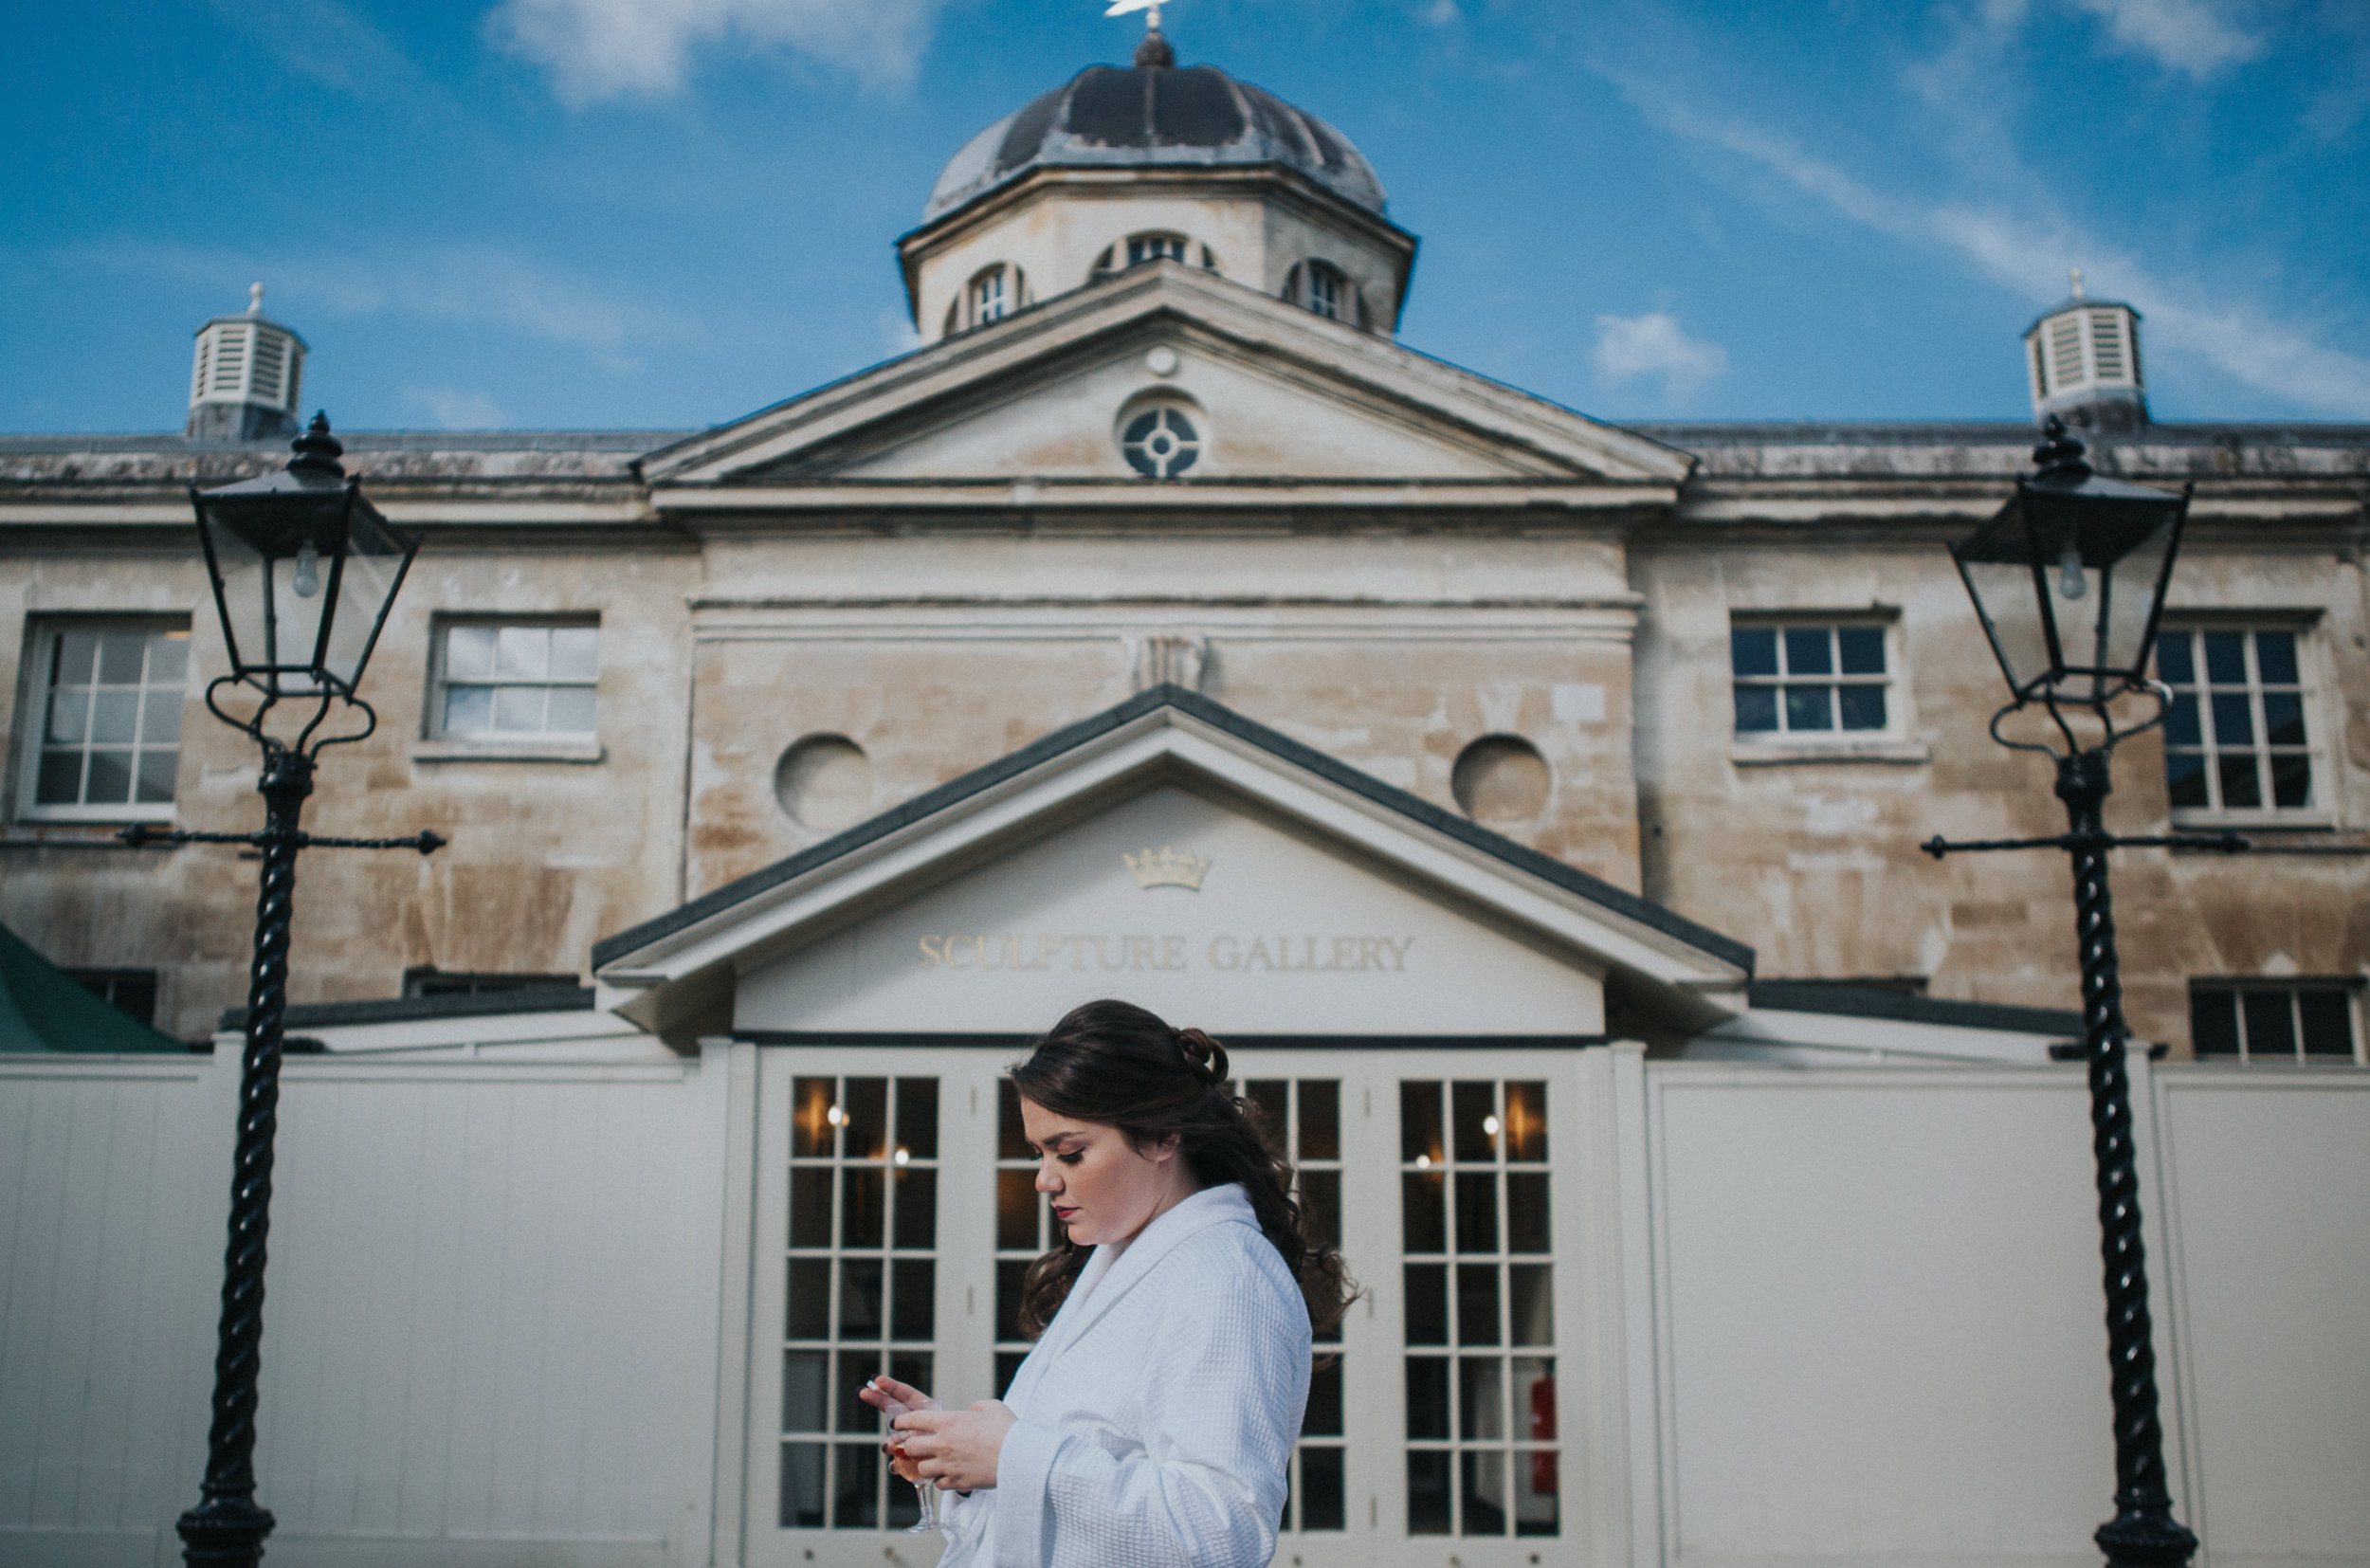 london-bedfordshire-uk-wedding-photography-woburn-scultpture-gallery-bridal-prep-08